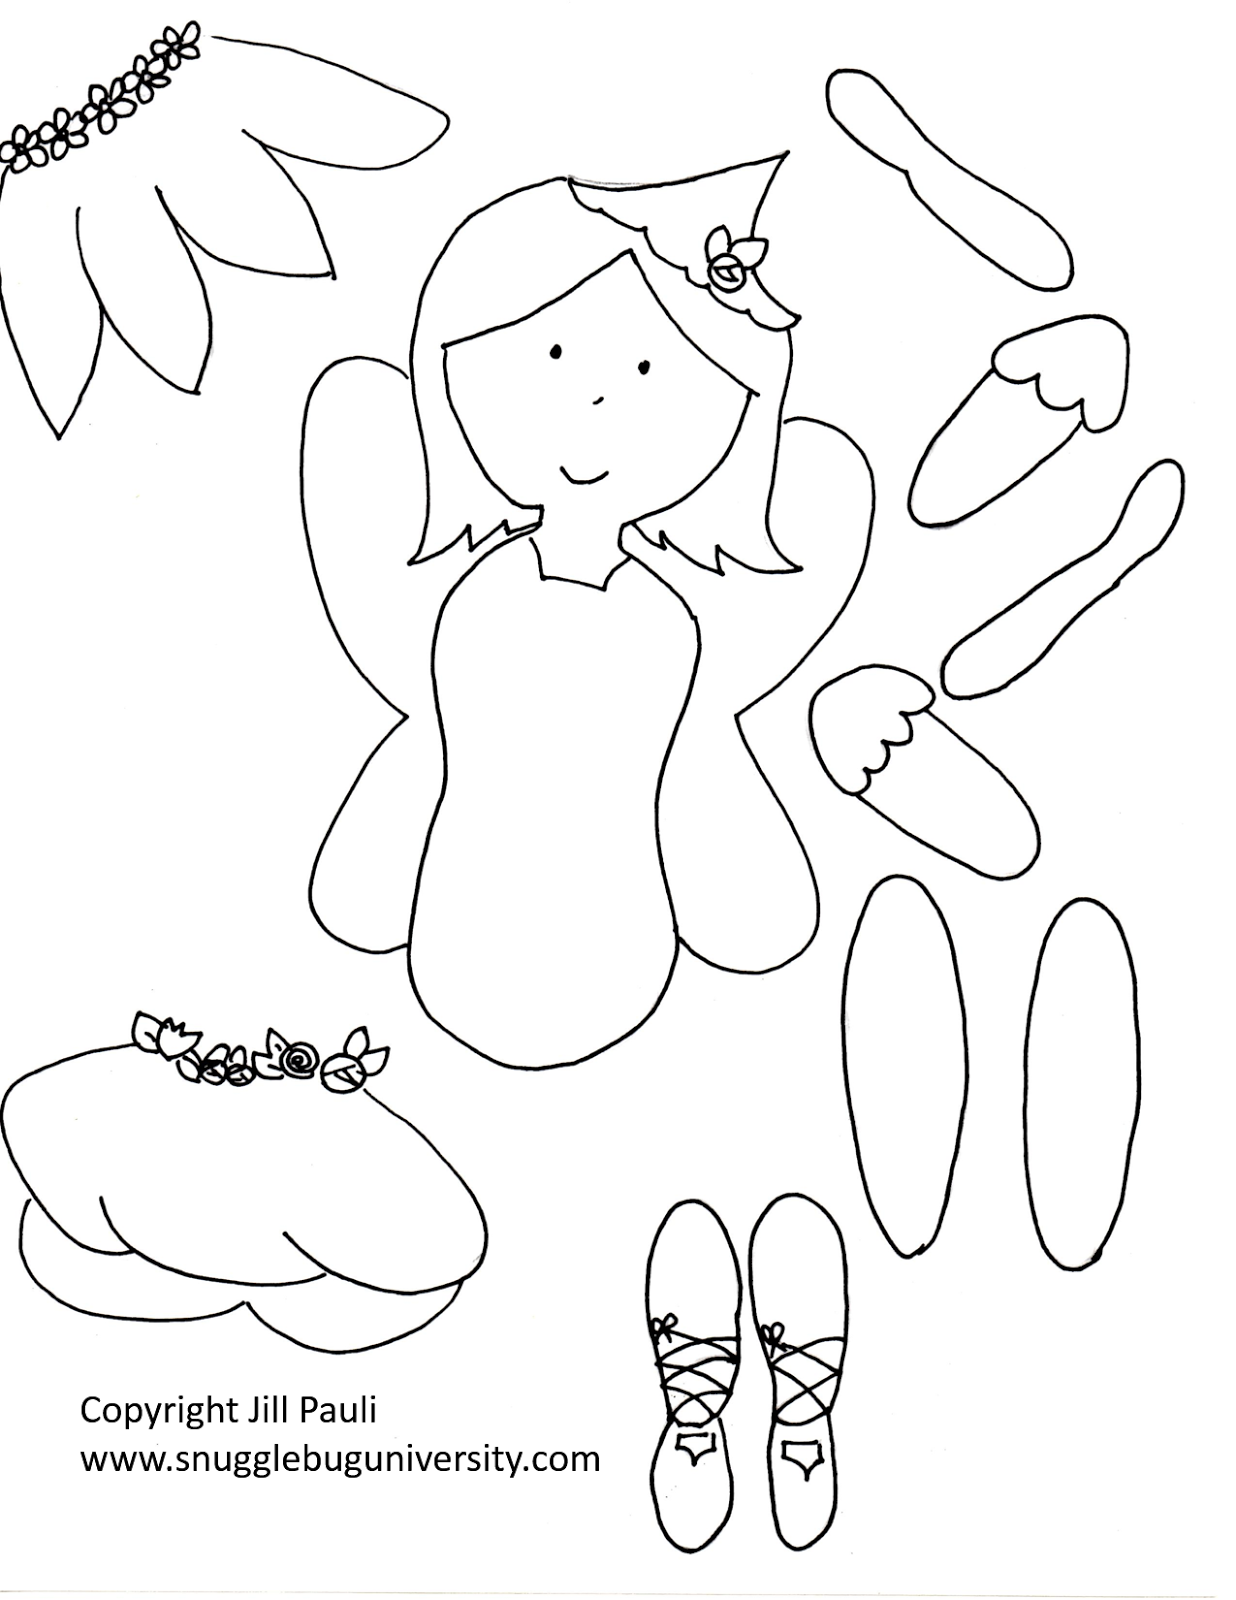 Snugglebug university make your own fairy puppets for Make a coloring page out of a photo